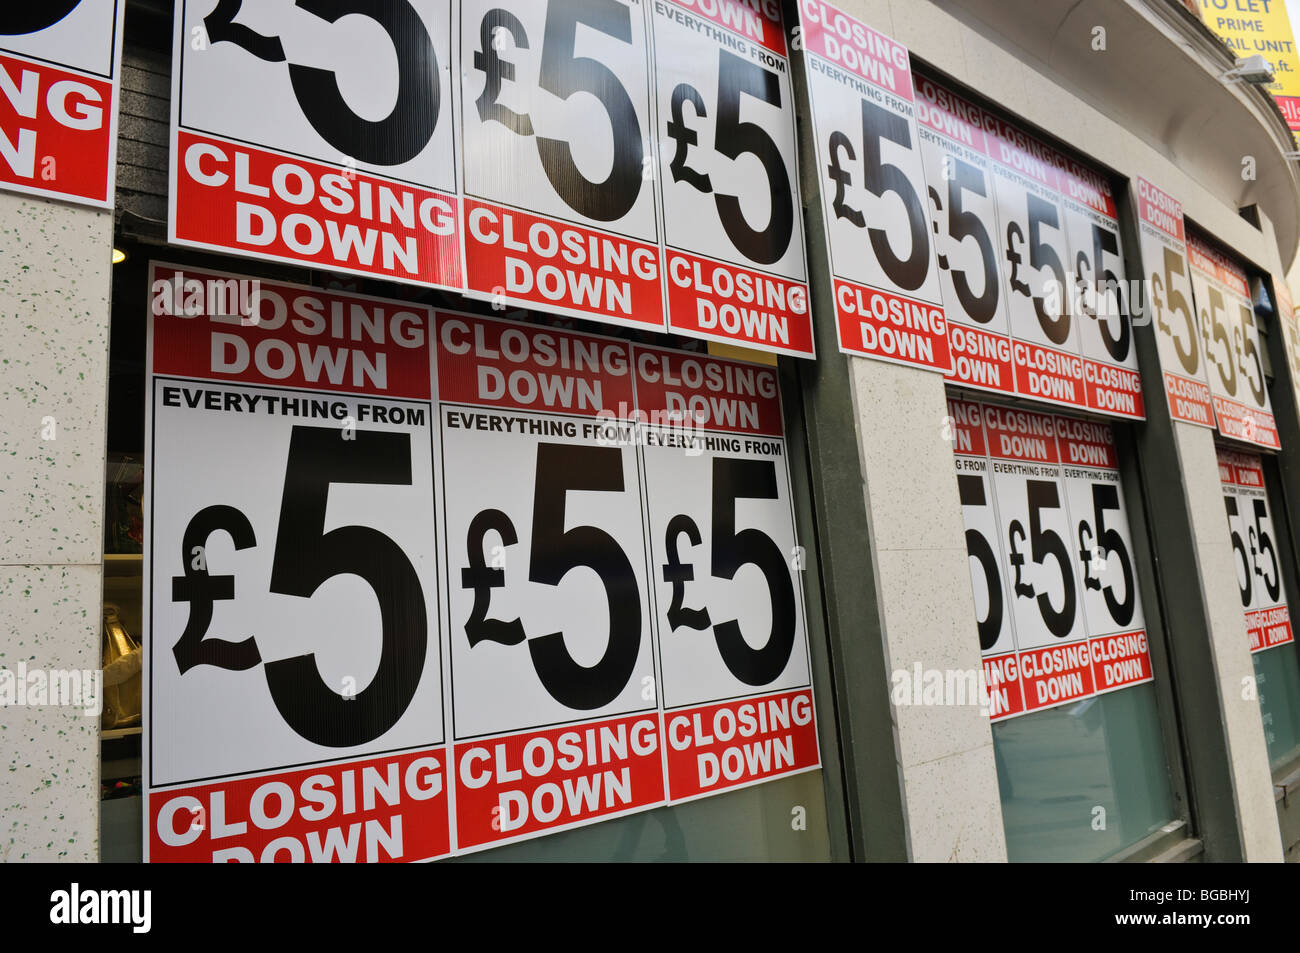 Signs advertising a Closing Down Sale - everything from £5 - Stock Image